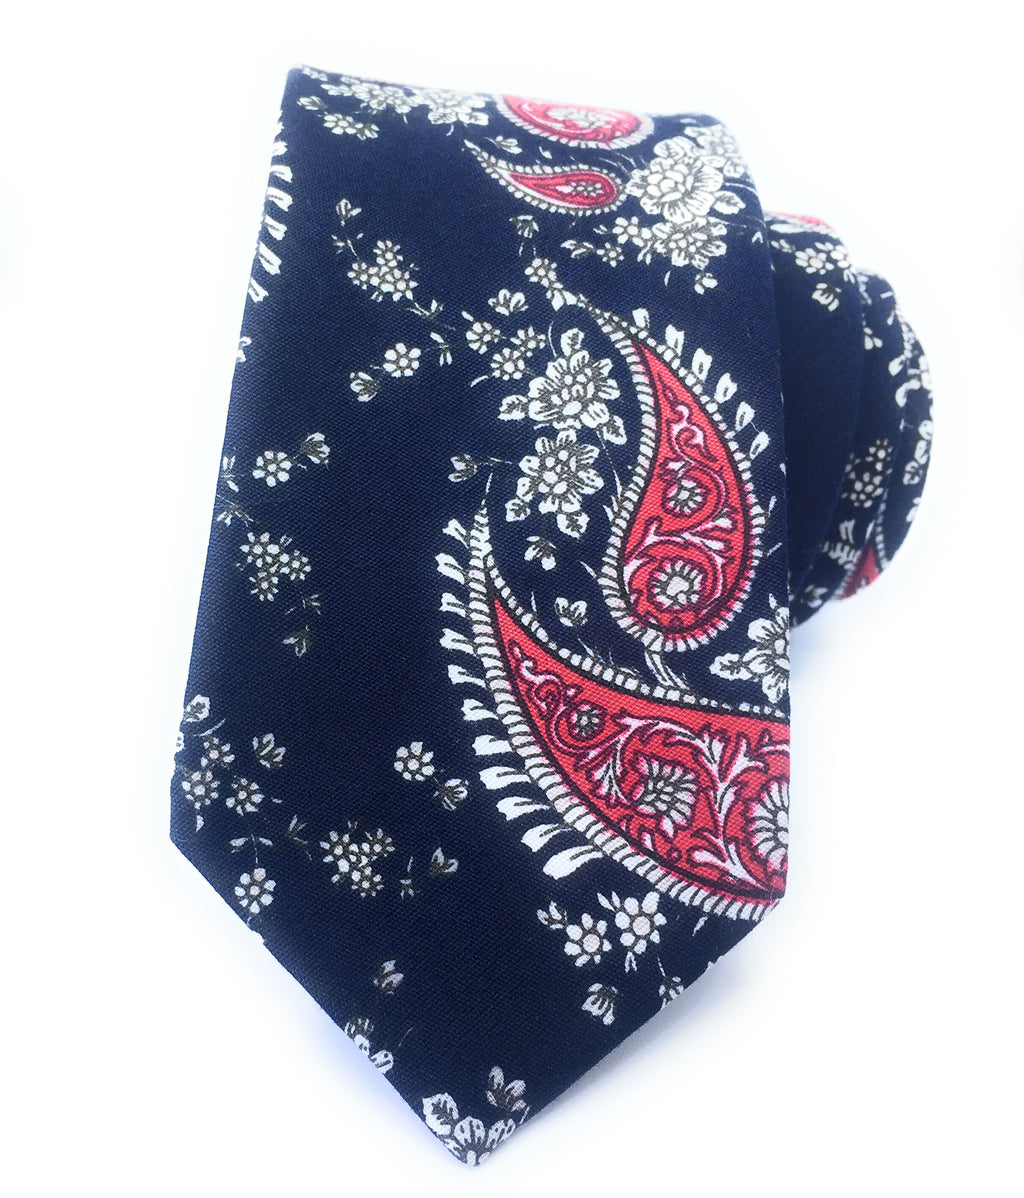 MIDNIGHT PAISLEY FLOWER TIES